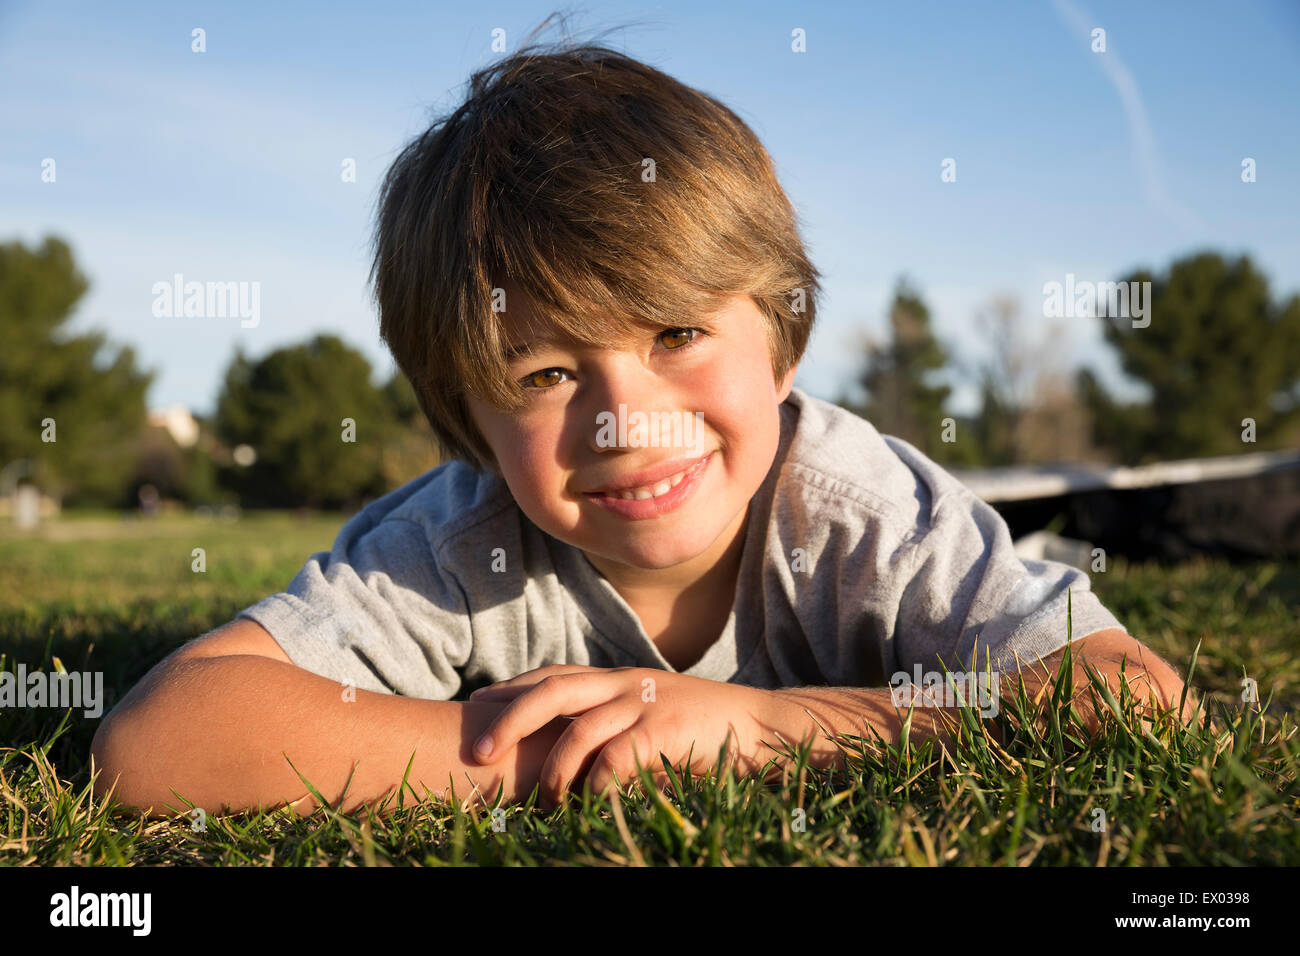 Portrait of smiling boy lying on grass park Photo Stock